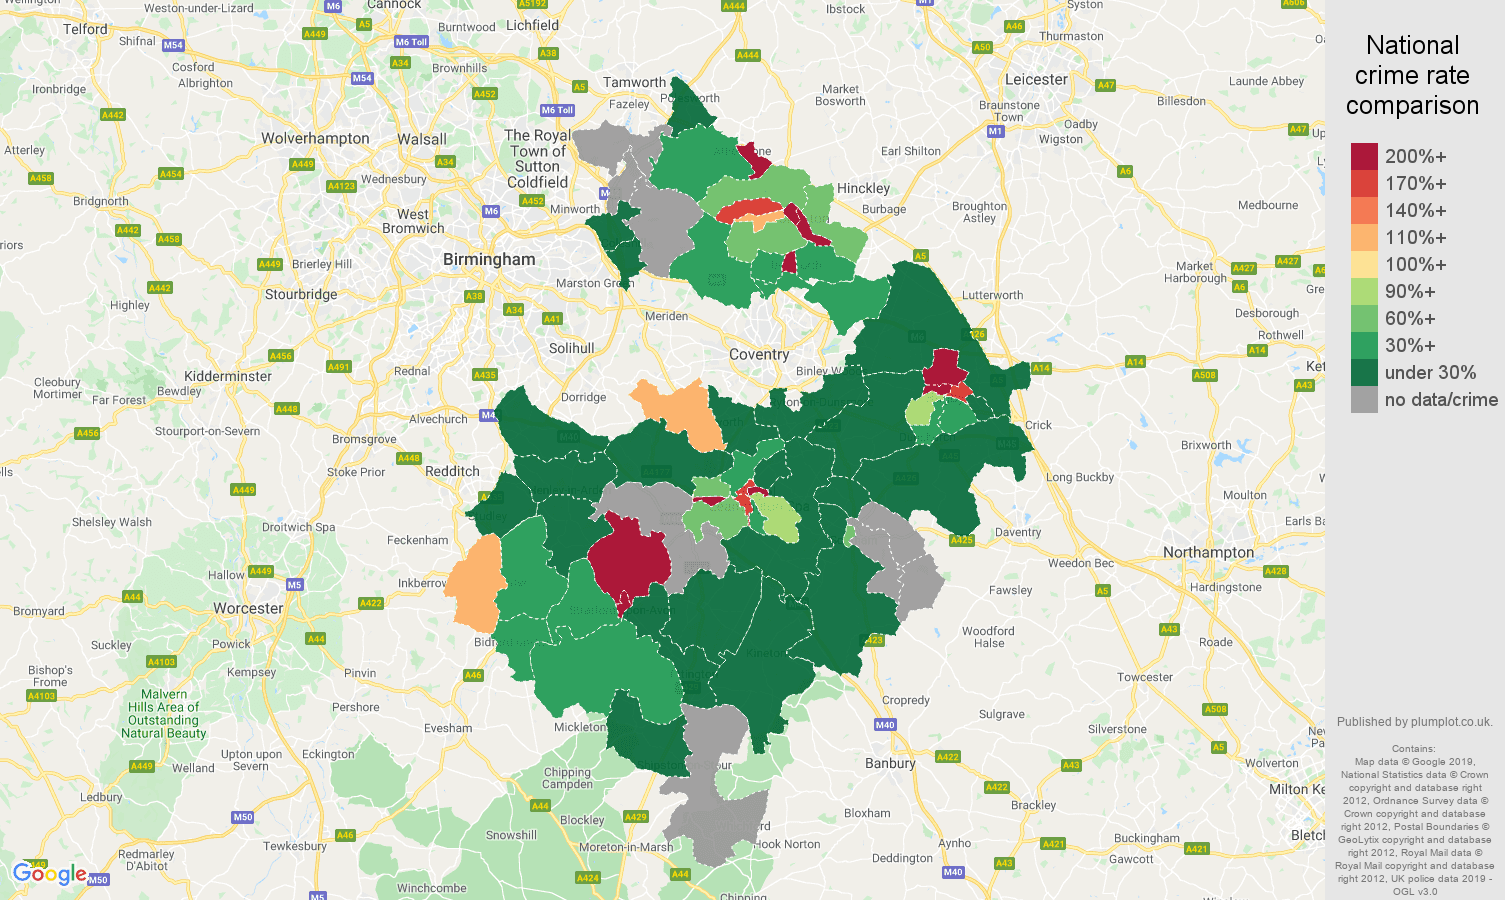 Warwickshire shoplifting crime rate comparison map